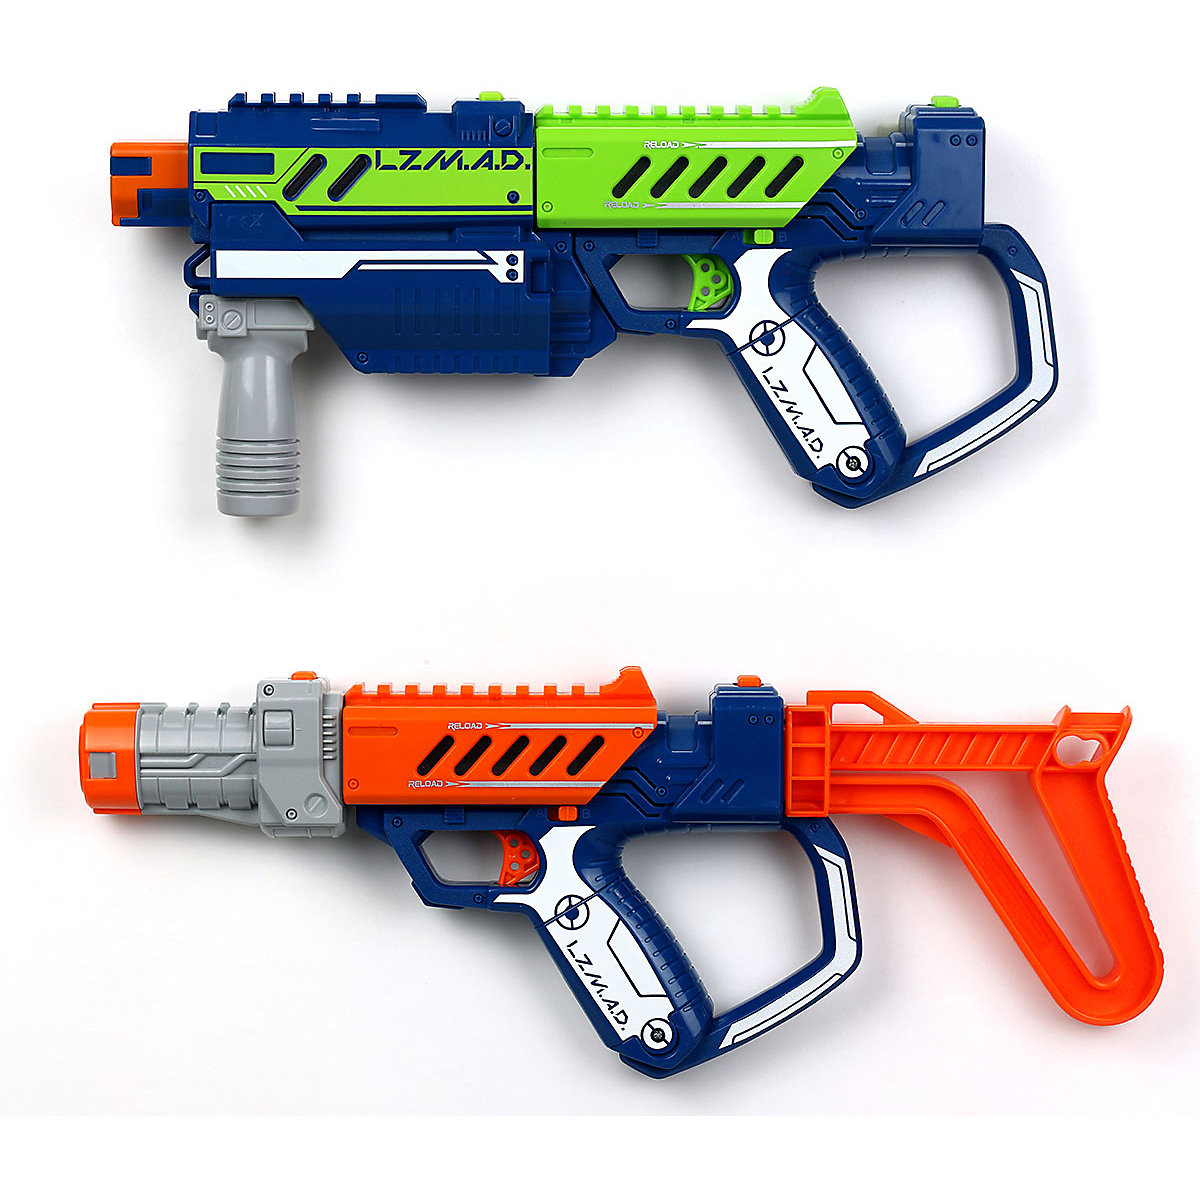 Silverlit Toy Guns 8445411 gun weapon toys games pneumatic blaster boy orbiz revolver Outdoor Fun Sports tactical x300 pistol gun light 500 lumens high output weapon flashlight fit 20mm picatinny weaver rail